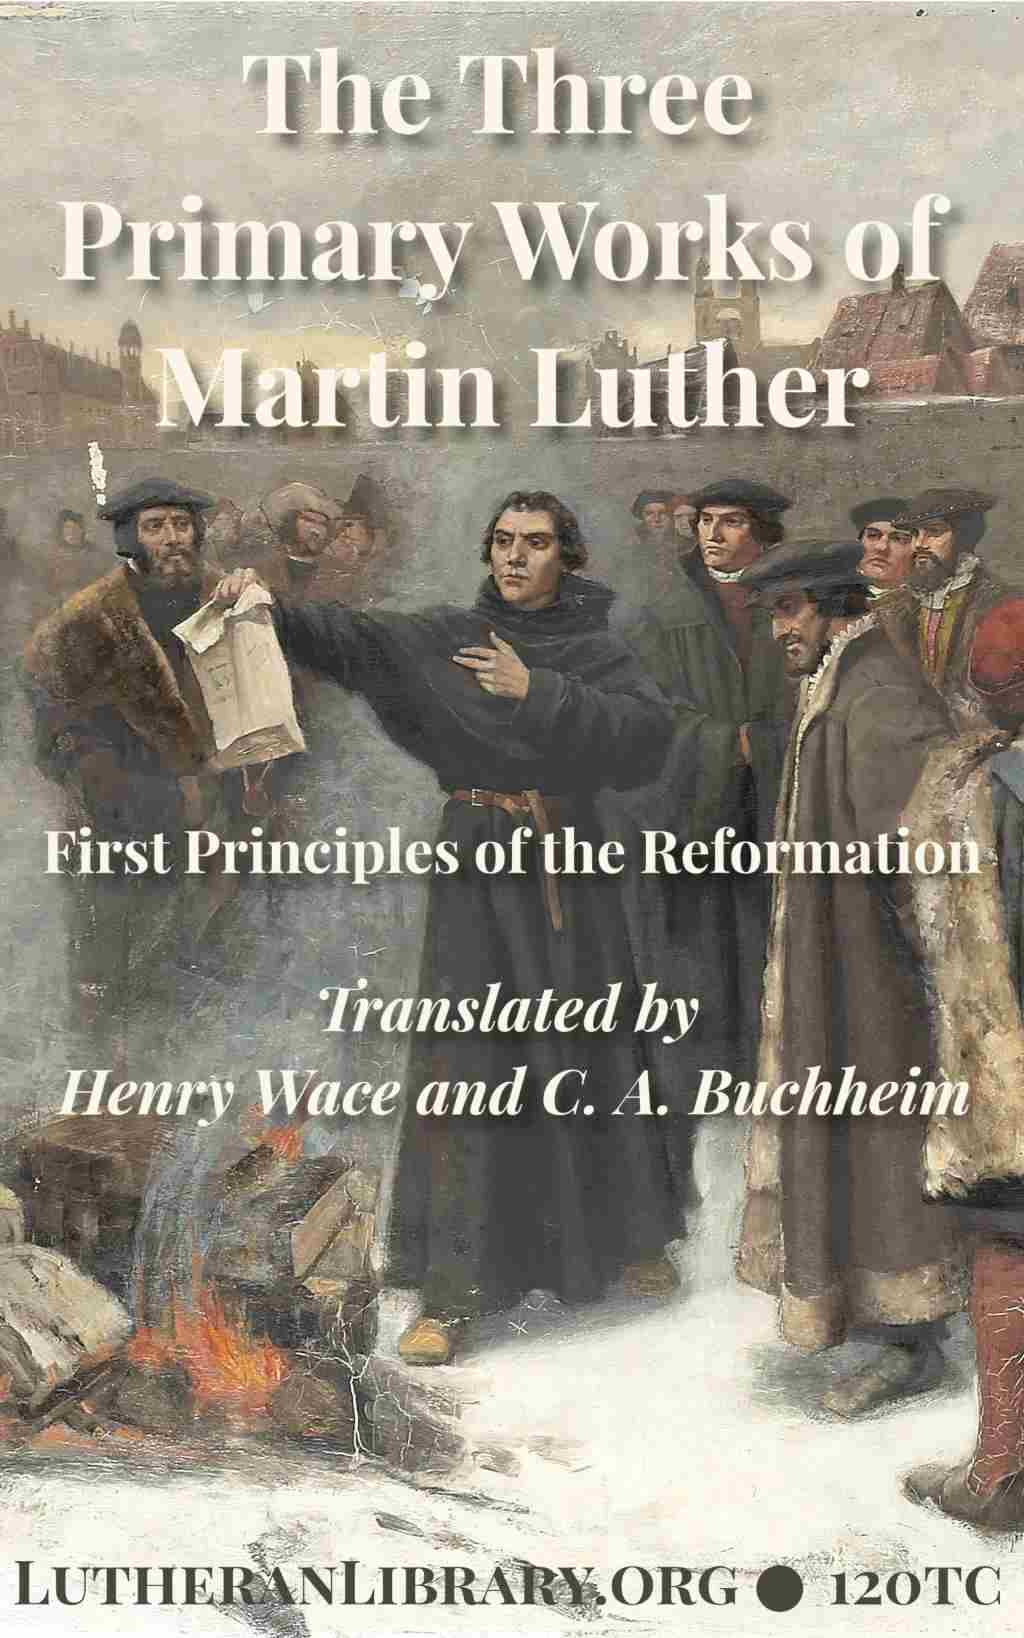 First Principles Of The Reformation – The Three Primary Works Of Luther And The 95 Theses Translated by Henry Wace and C. A. Buchheim